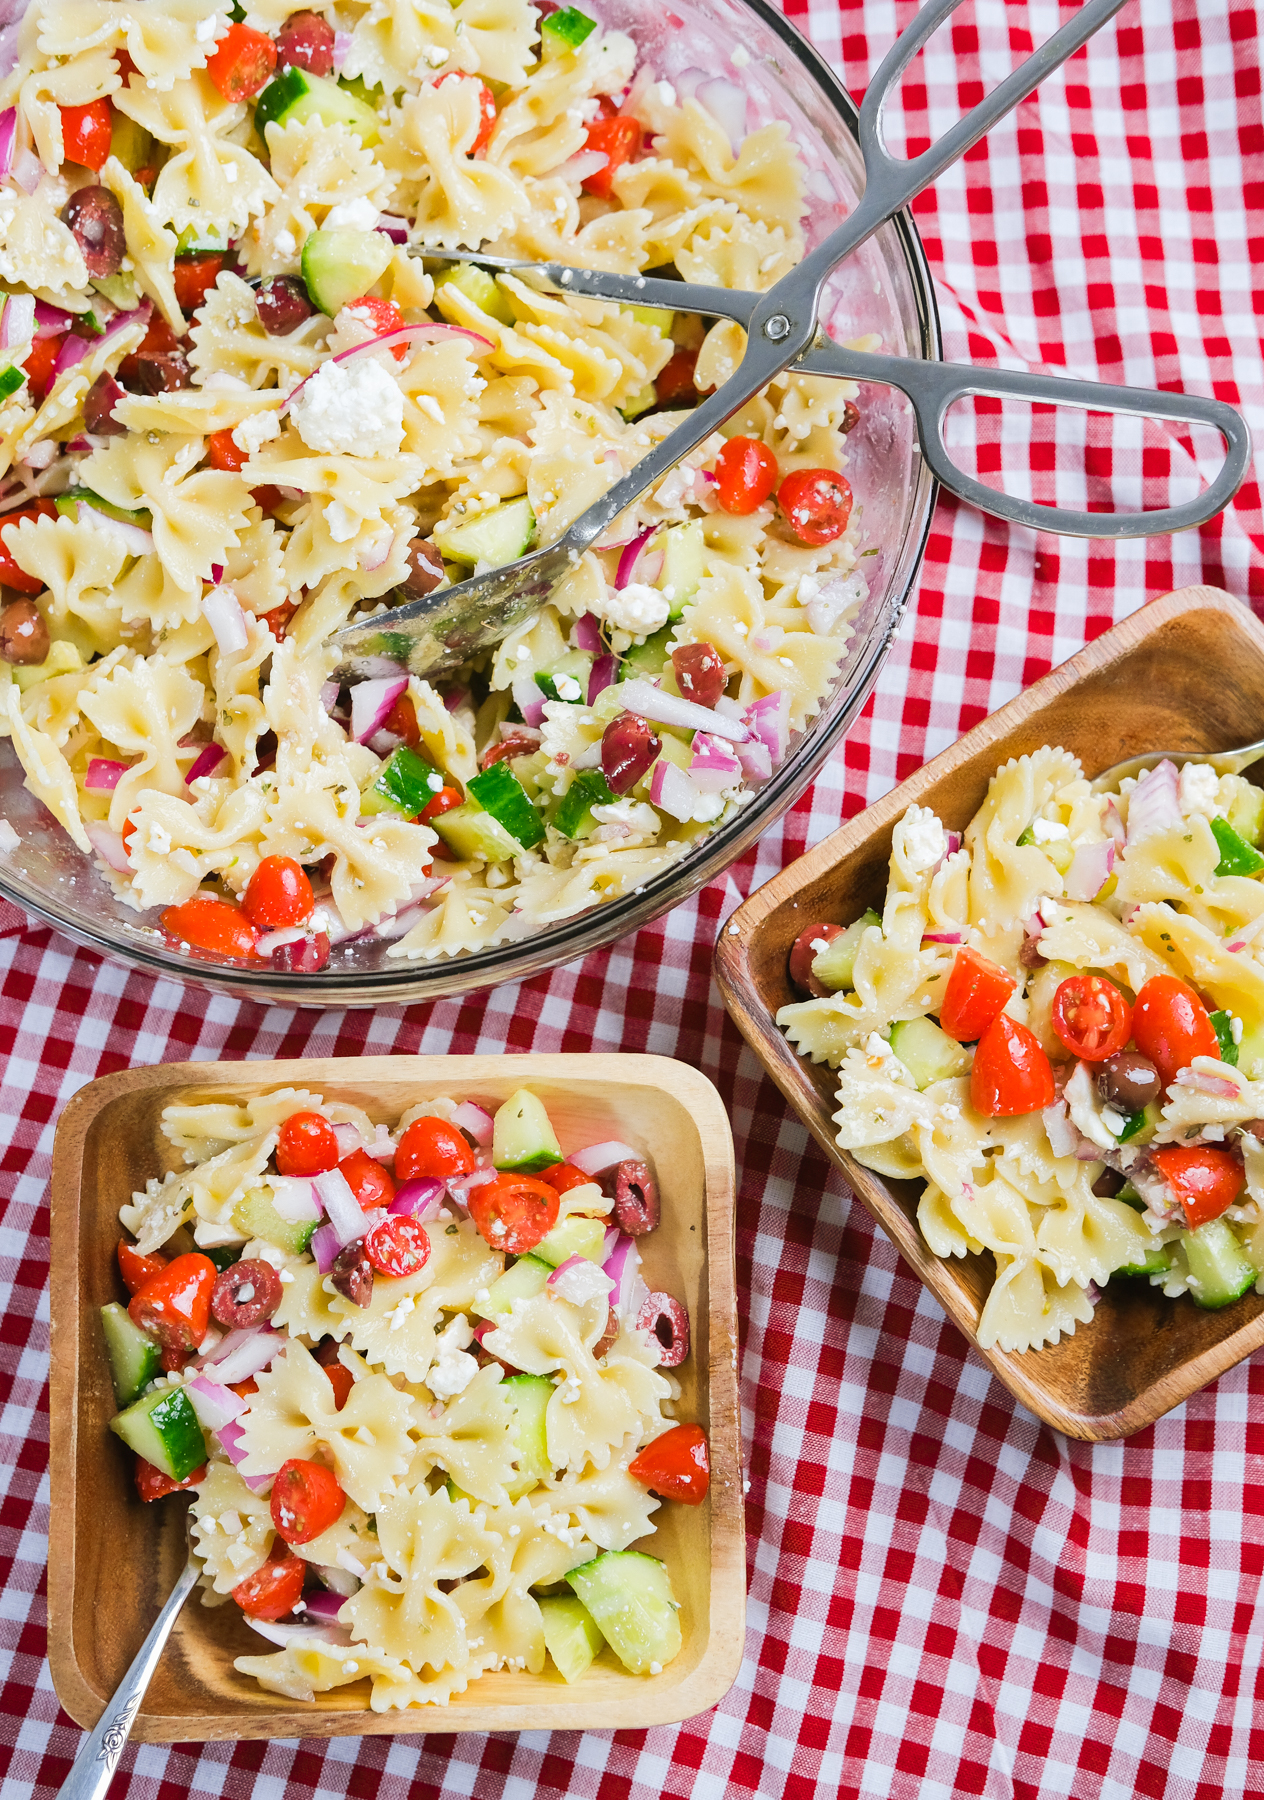 serving pasta salad at a picnic